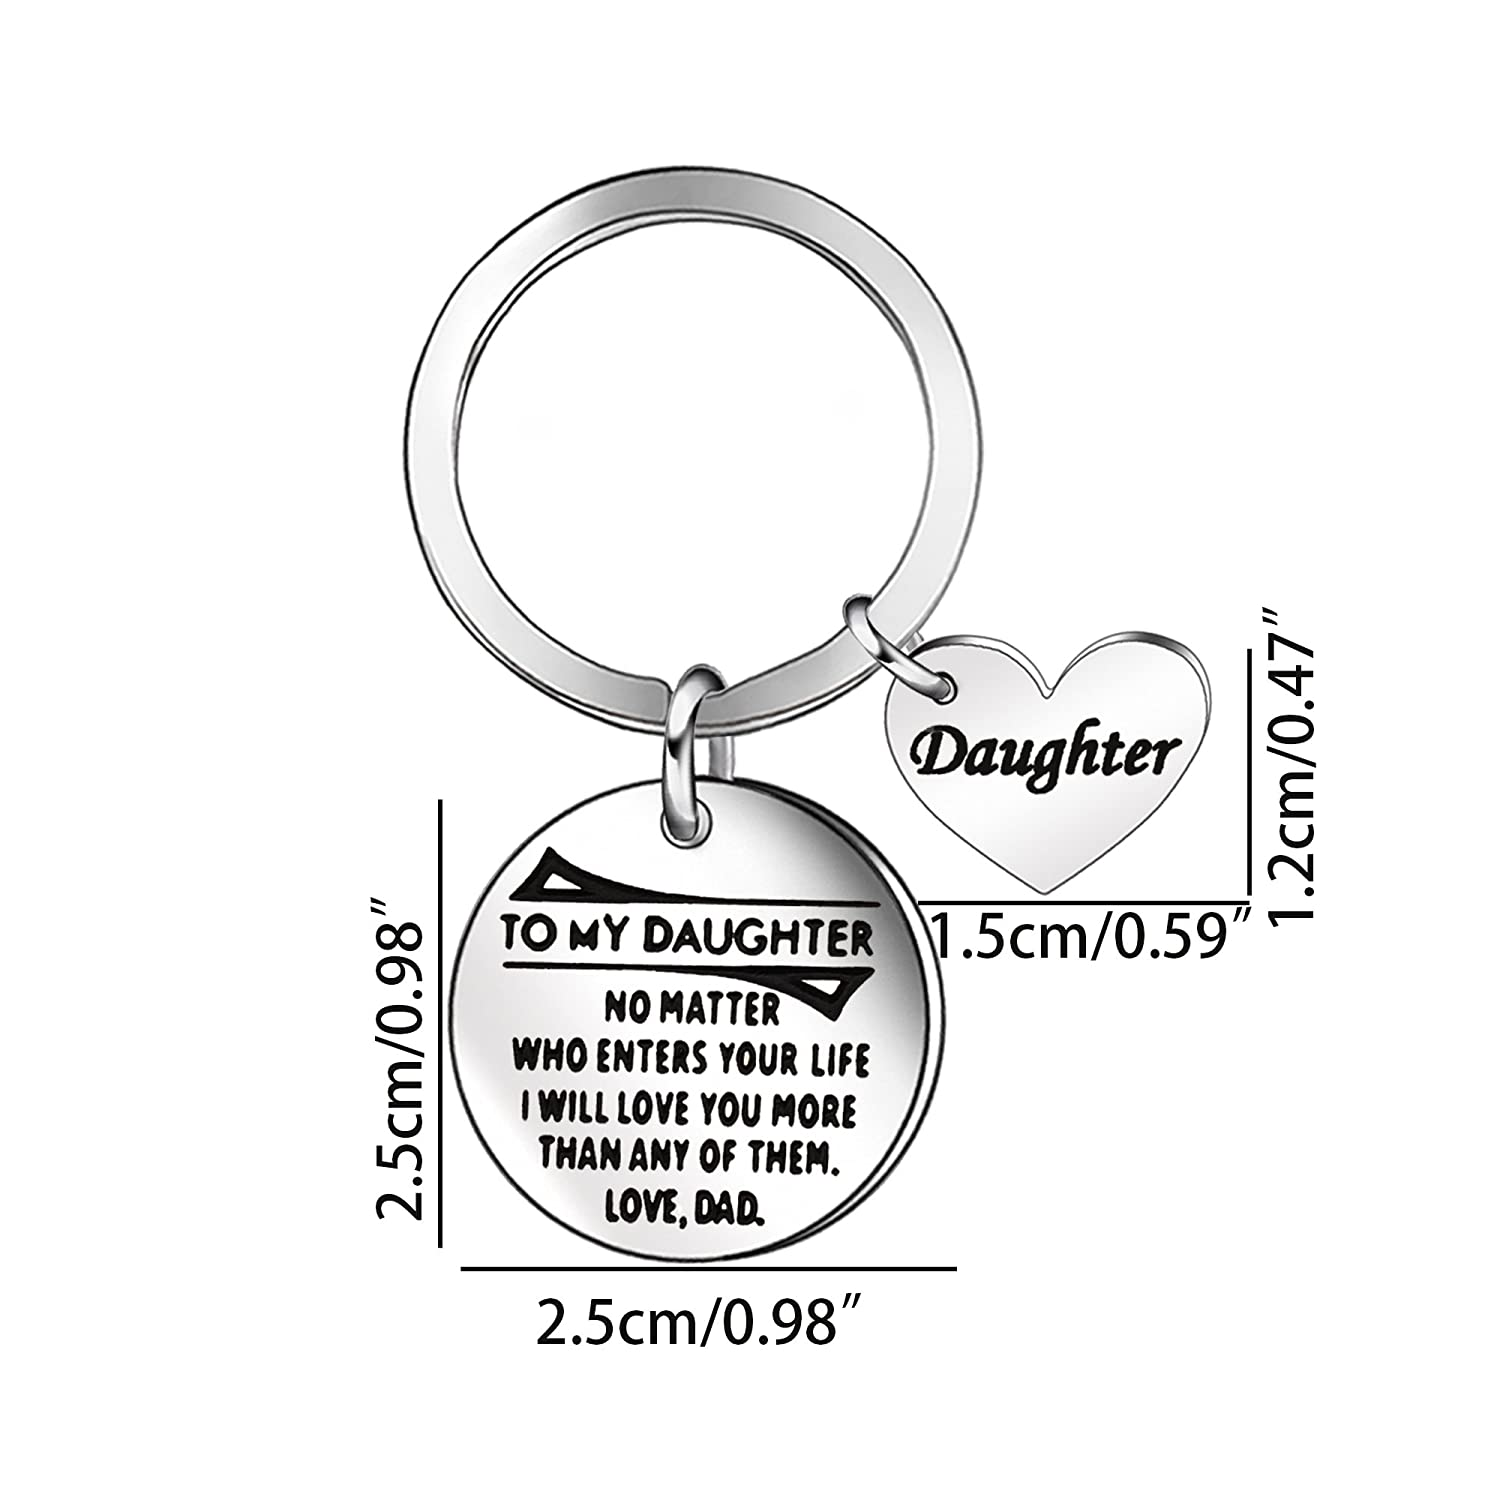 amazon niceter daughter jewelry gifts keychain key ring chain Dar Grave Marking Emblems amazon niceter daughter jewelry gifts keychain key ring chain gift for daughter children heart shape stainless steel pendant jewelry